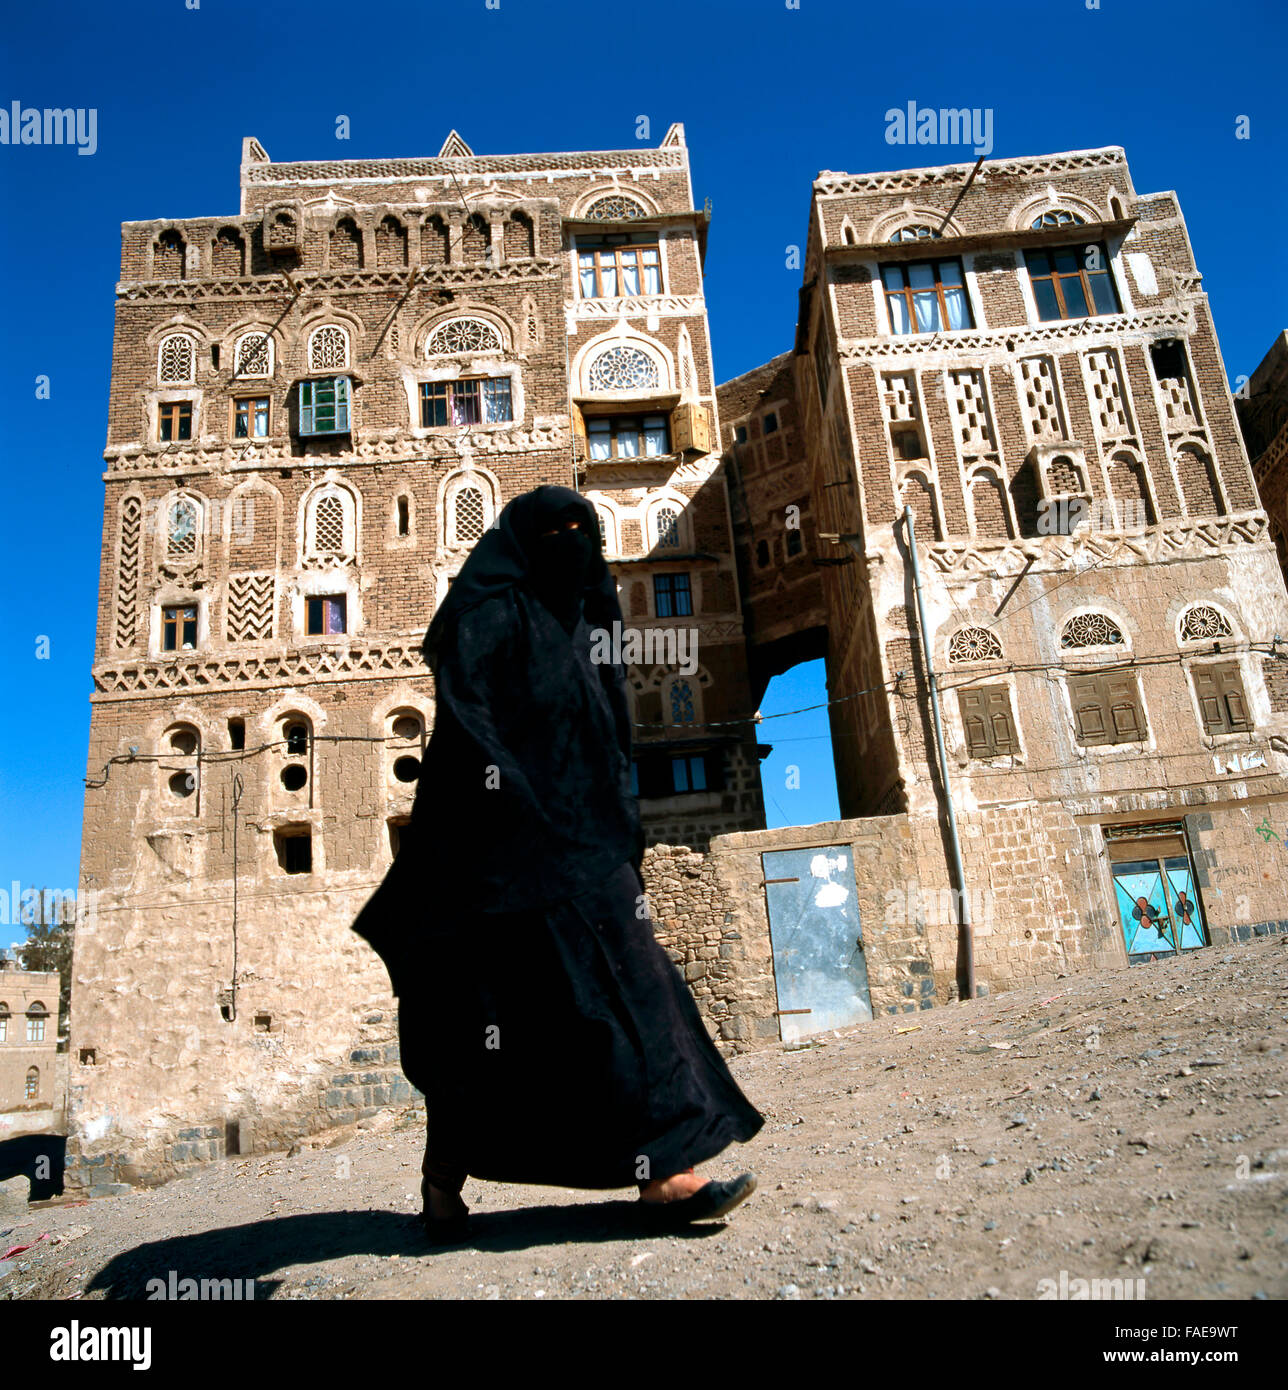 A veiled Muslim woman walks on a Sanaa street, Yemen.At background typical Yemen houses. - Stock Image